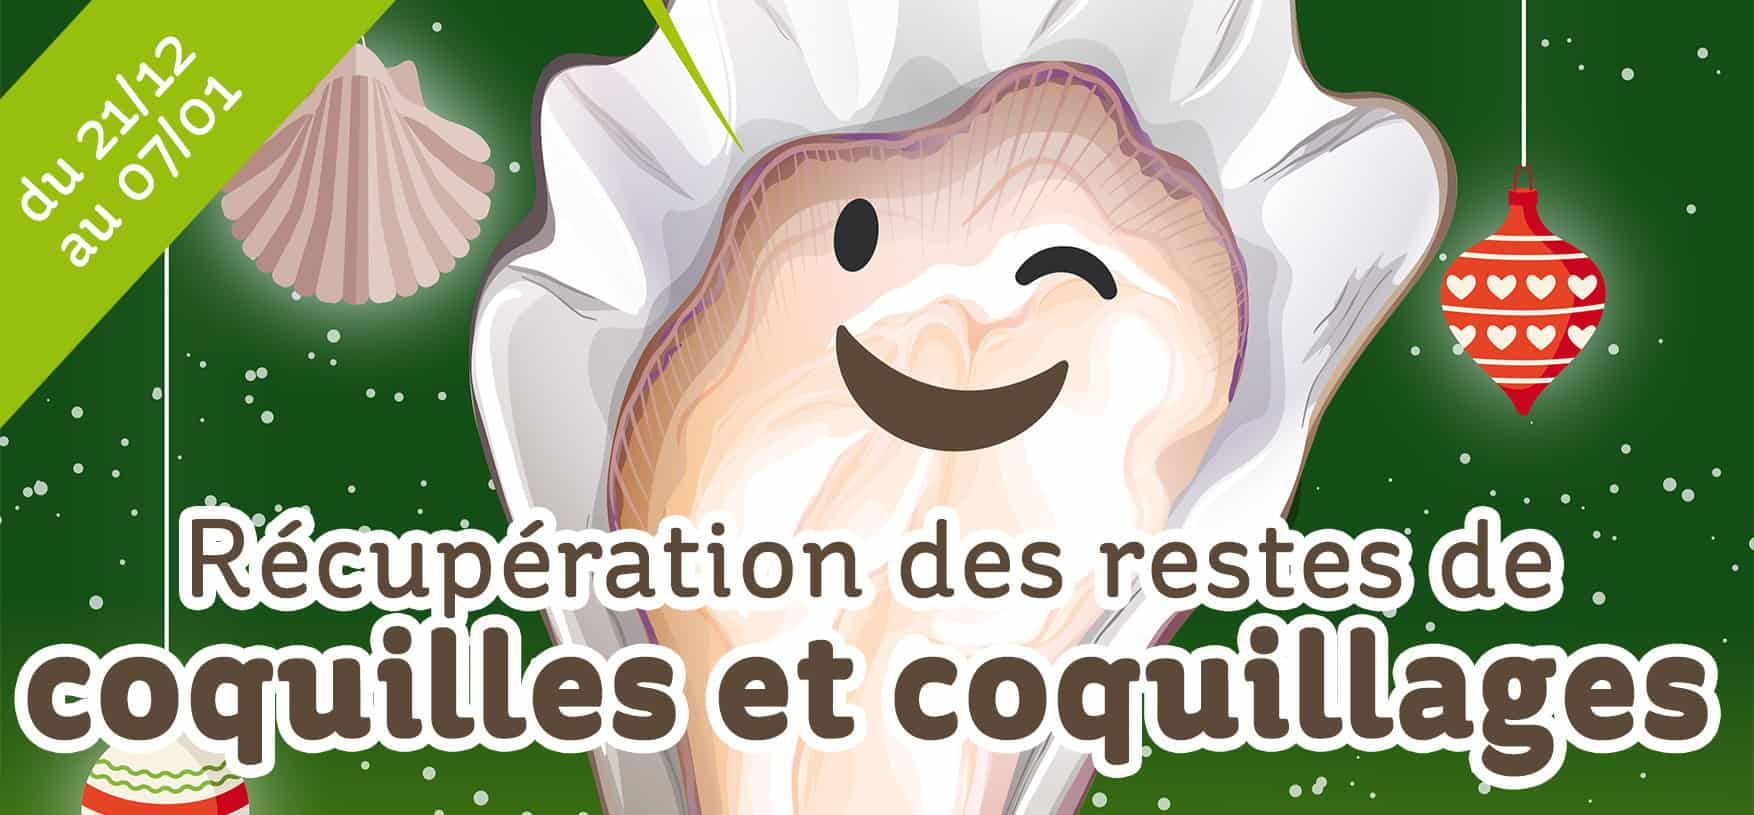 bandeau coquille